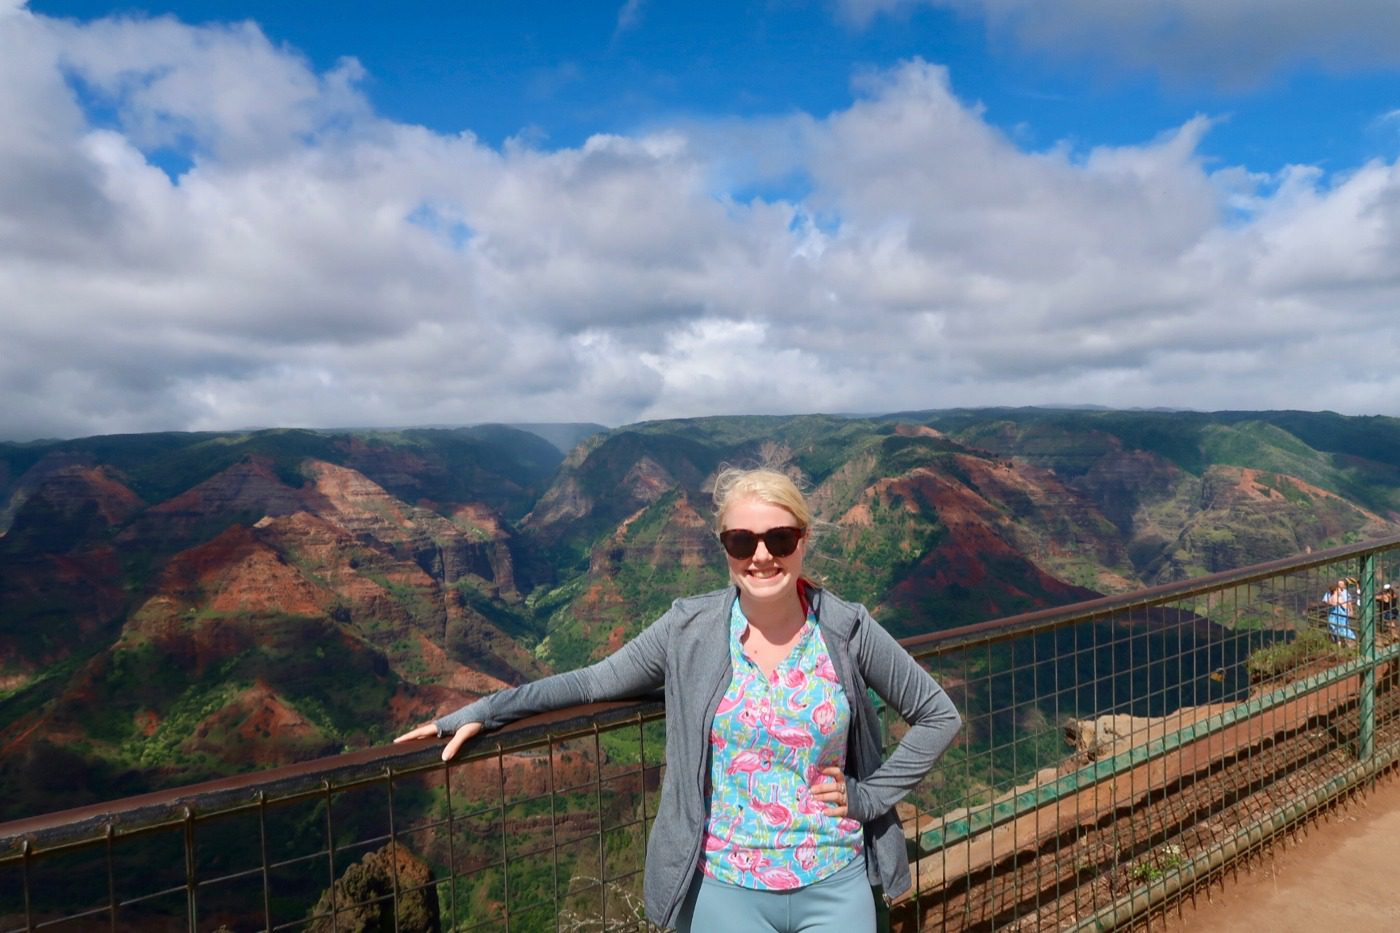 At the Grand Canyon of the Pacific in Kauai, HI.